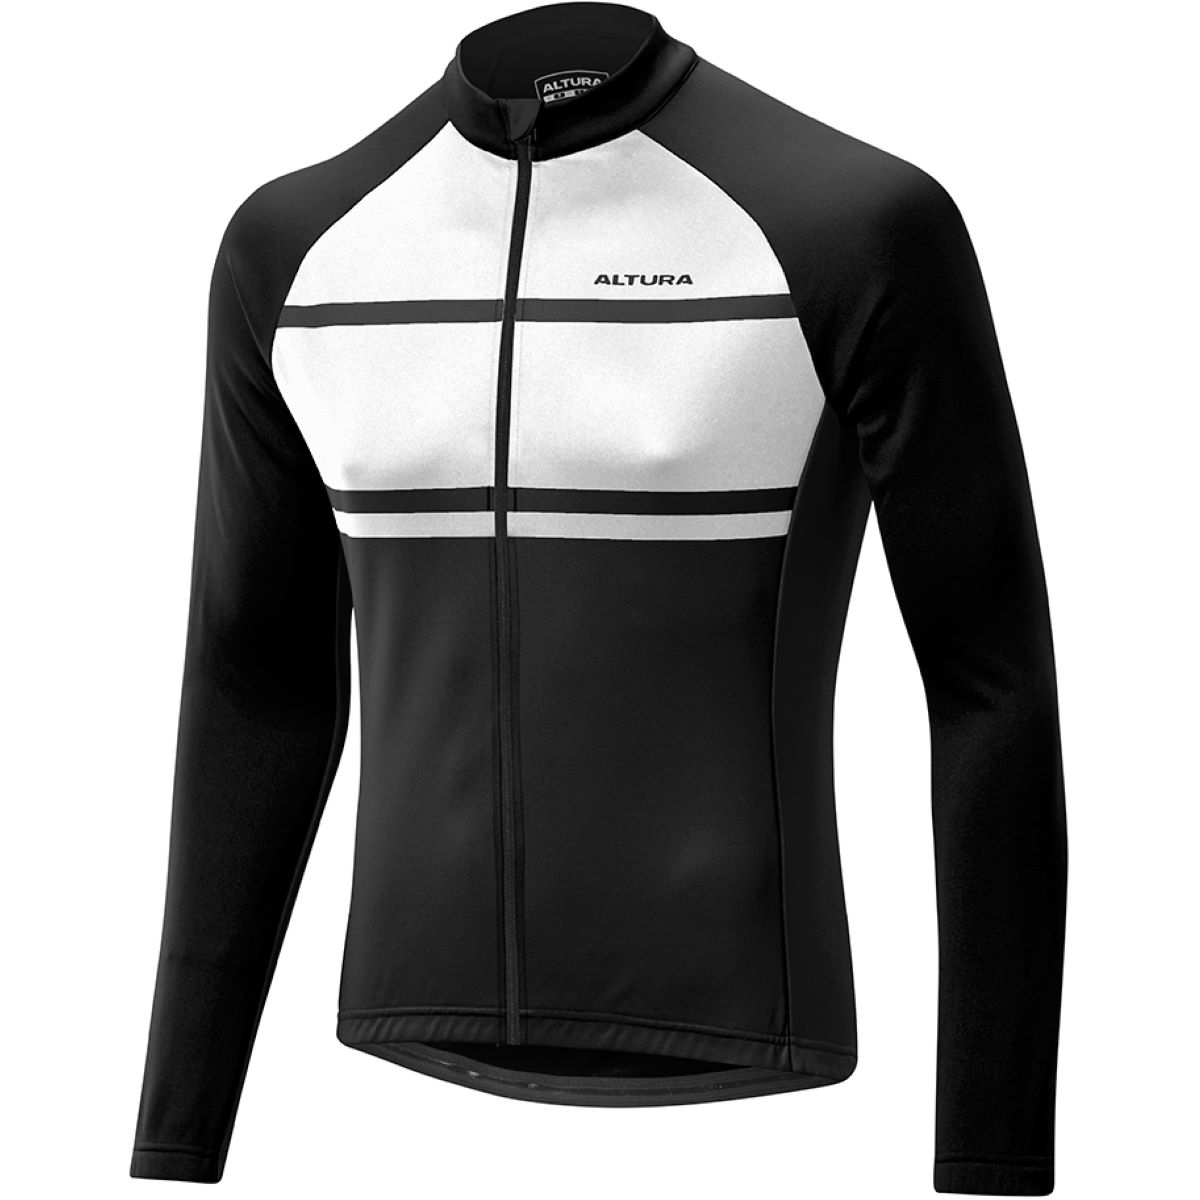 Maillot cycliste Altura Airstream (manches longues) - M Blanc/Noir